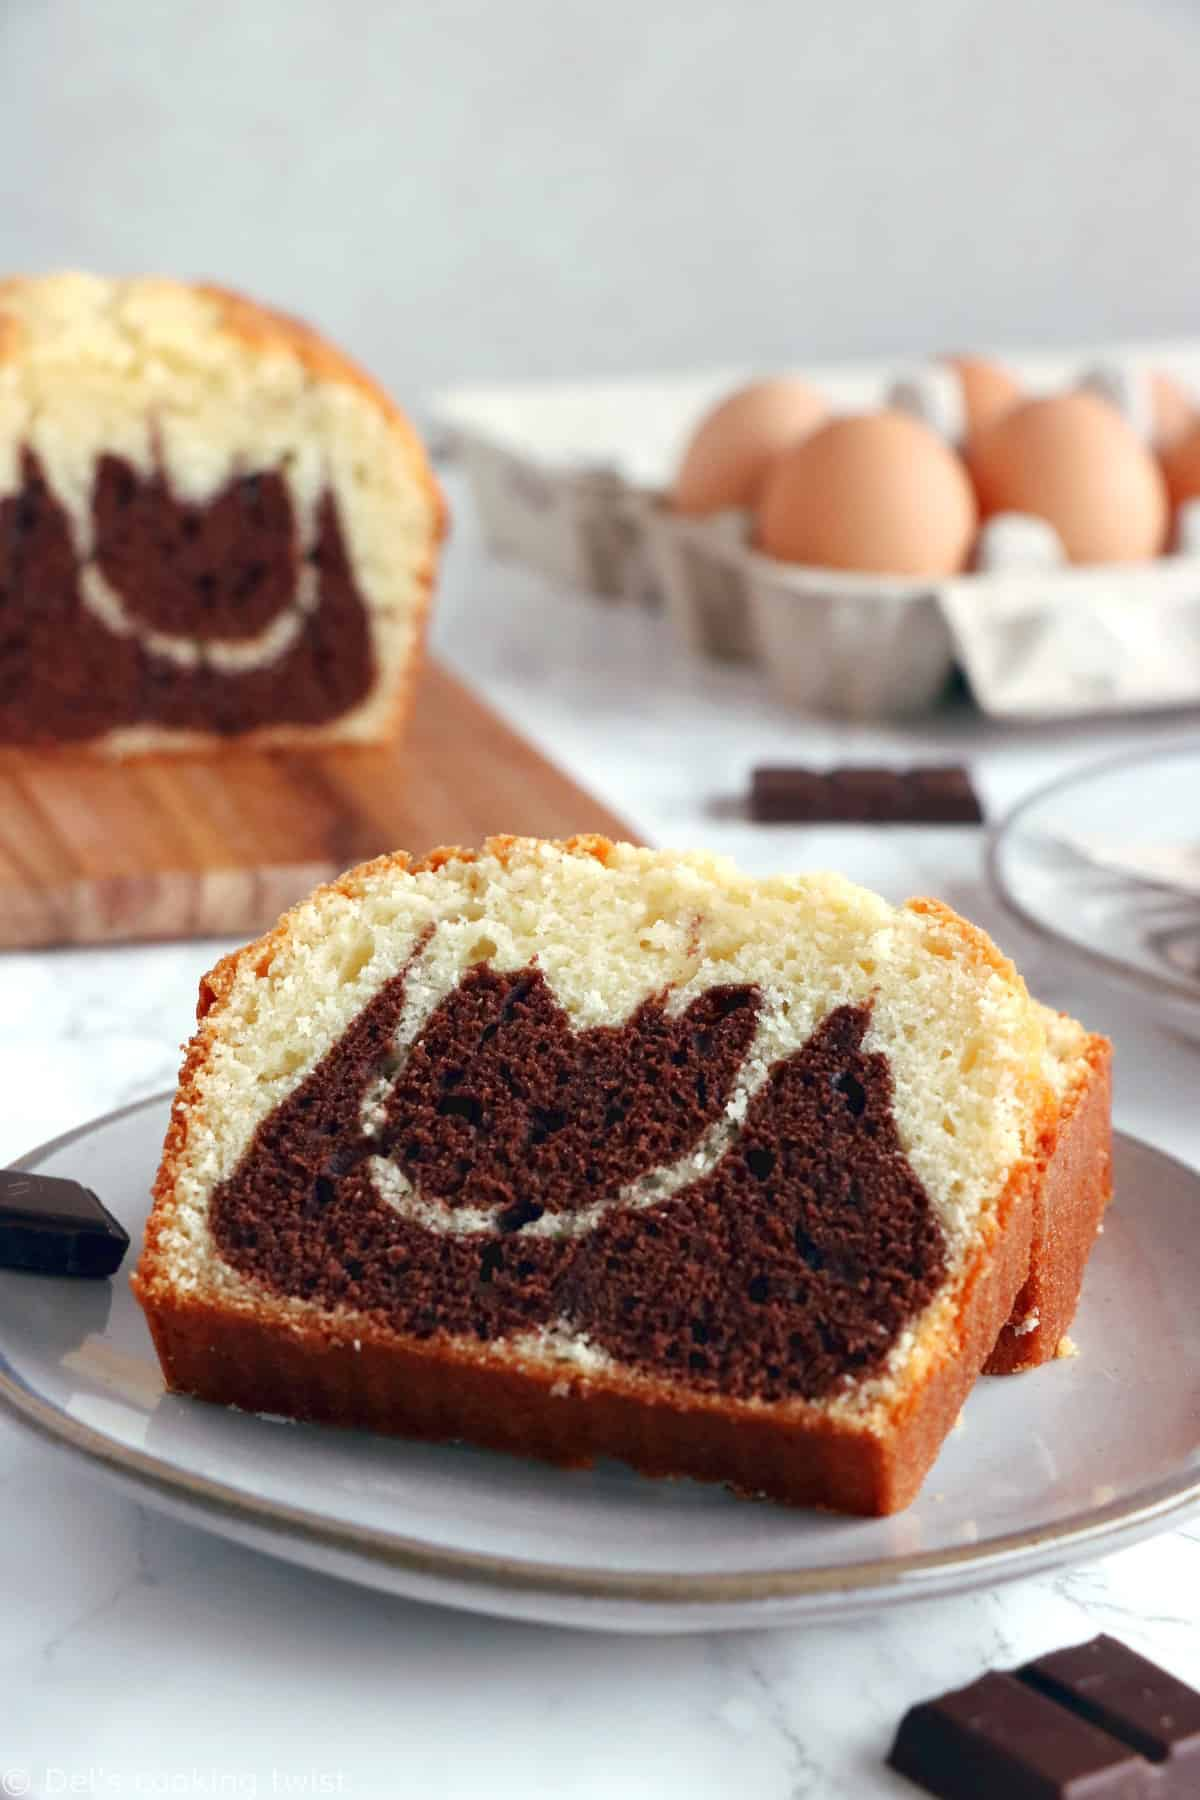 Easy Chocolate Marble Yogurt Cake has become a basic recipe in my house. It's light, fluffy, moist, delicious, and ready in no time.